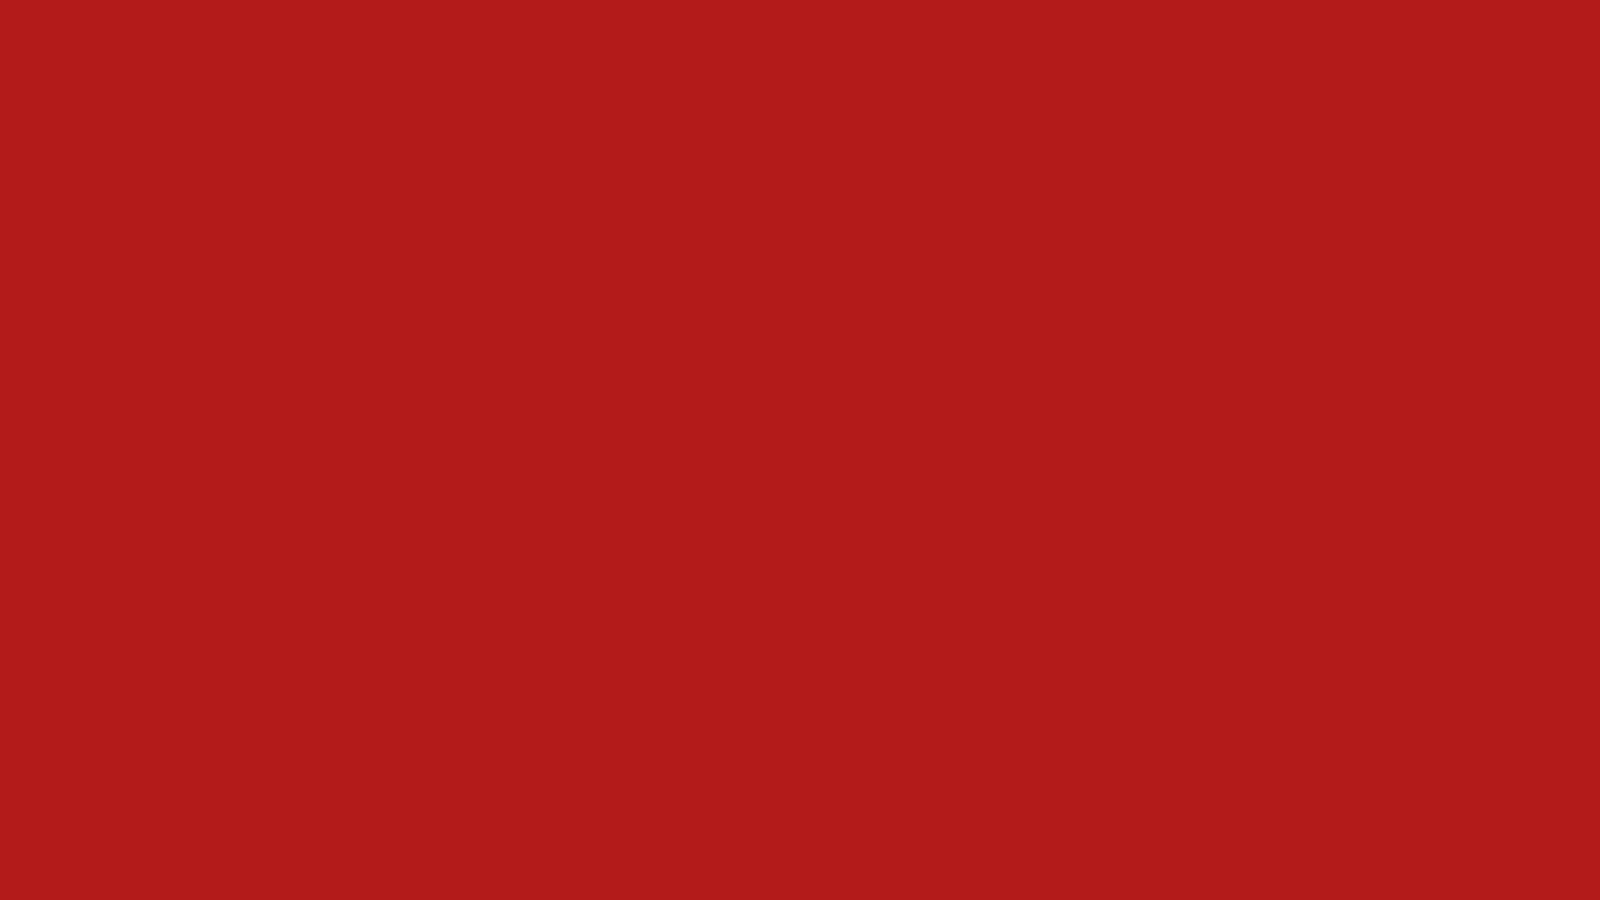 1600x900 Cornell Red Solid Color Background